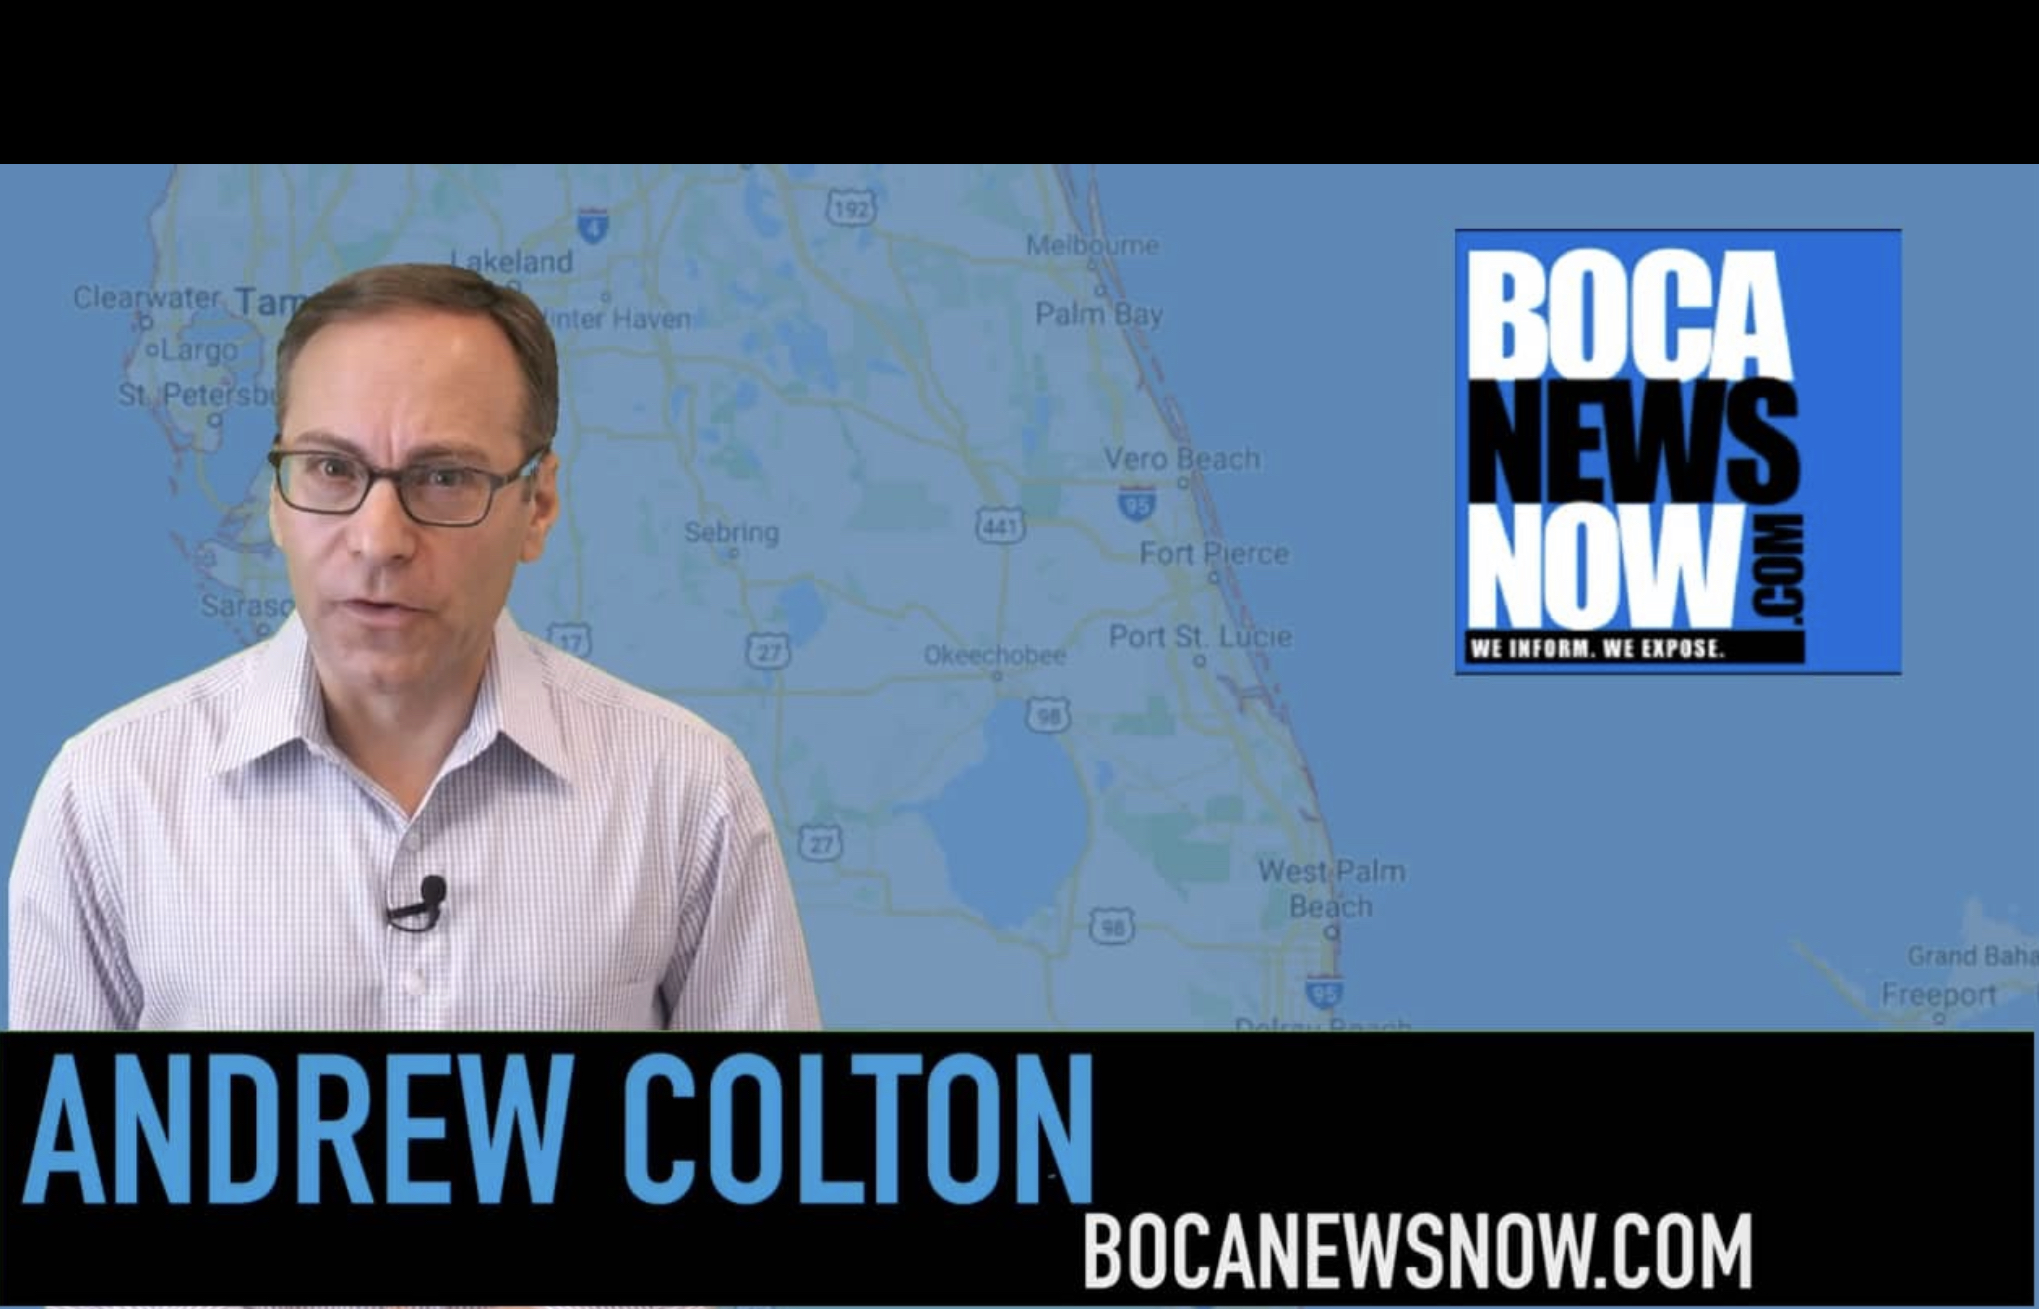 bocanewsnow.com TV for April 6, 2020 morning edition